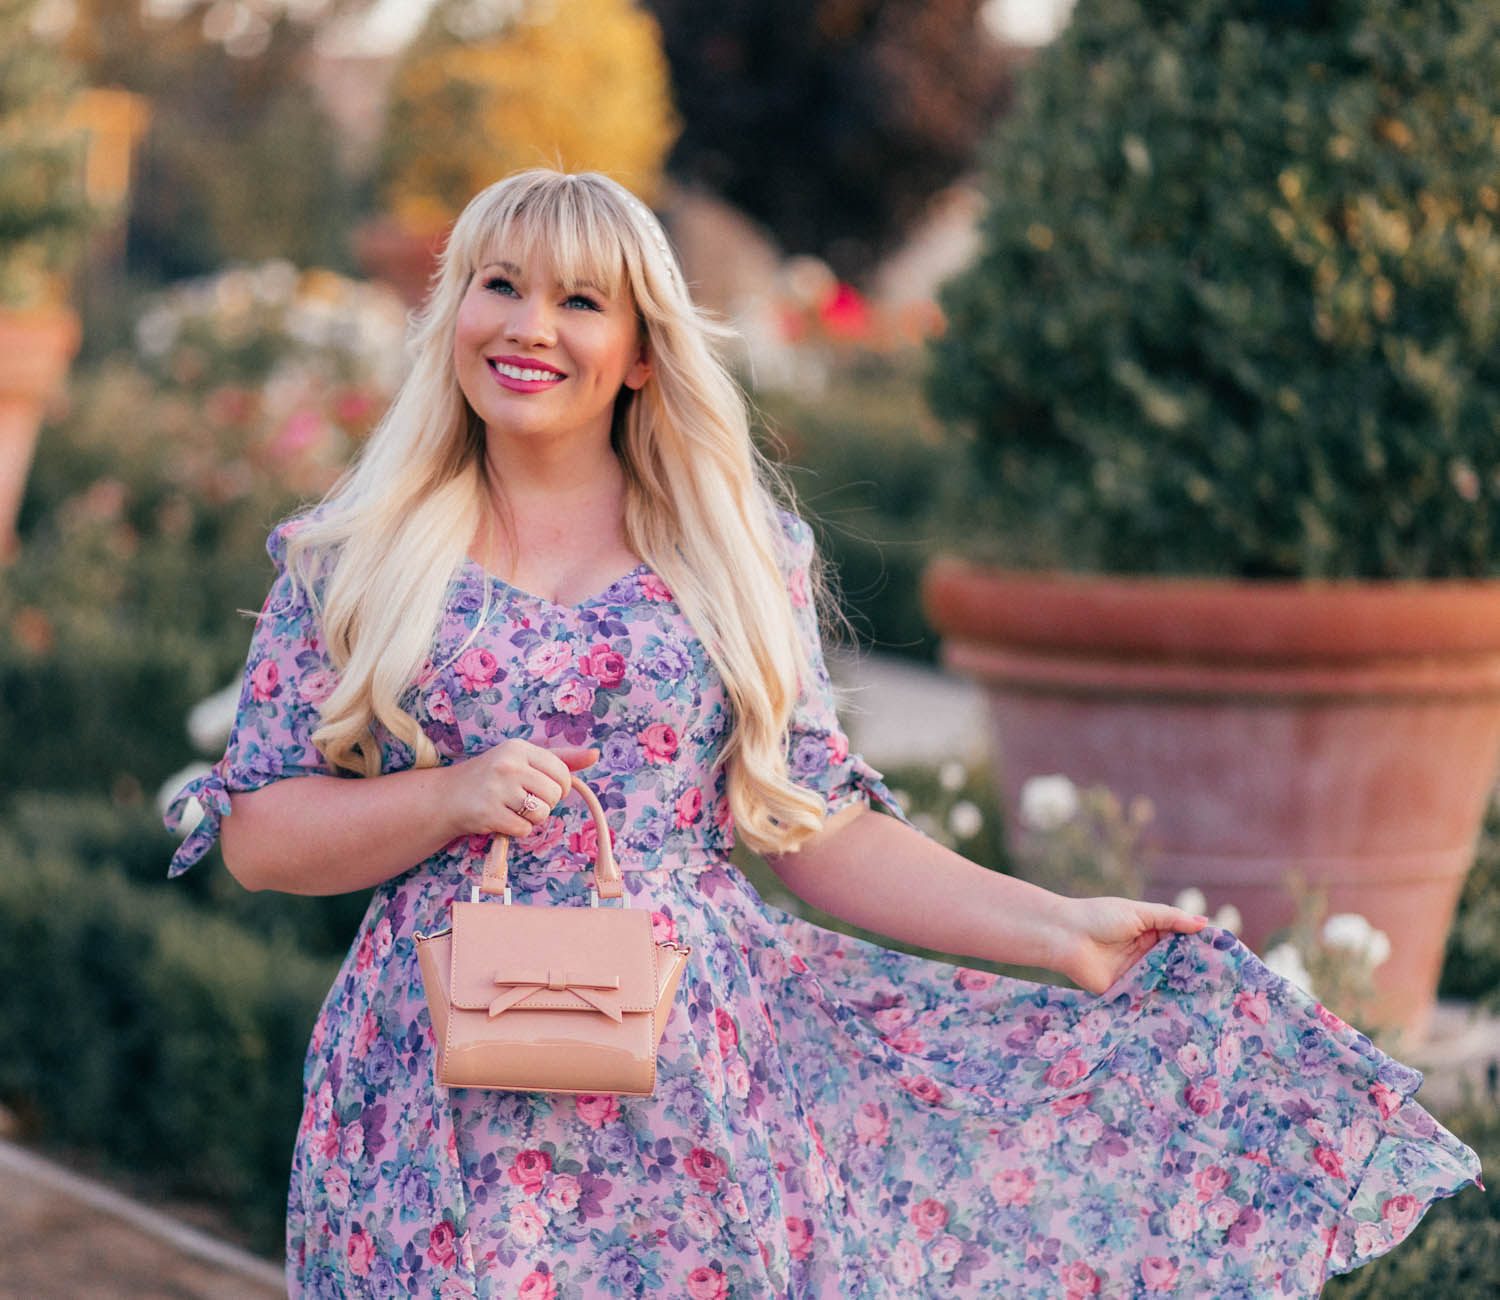 Elizabeth Hugen of Lizzie in Lace wears a purple floral dress from Review Australia!